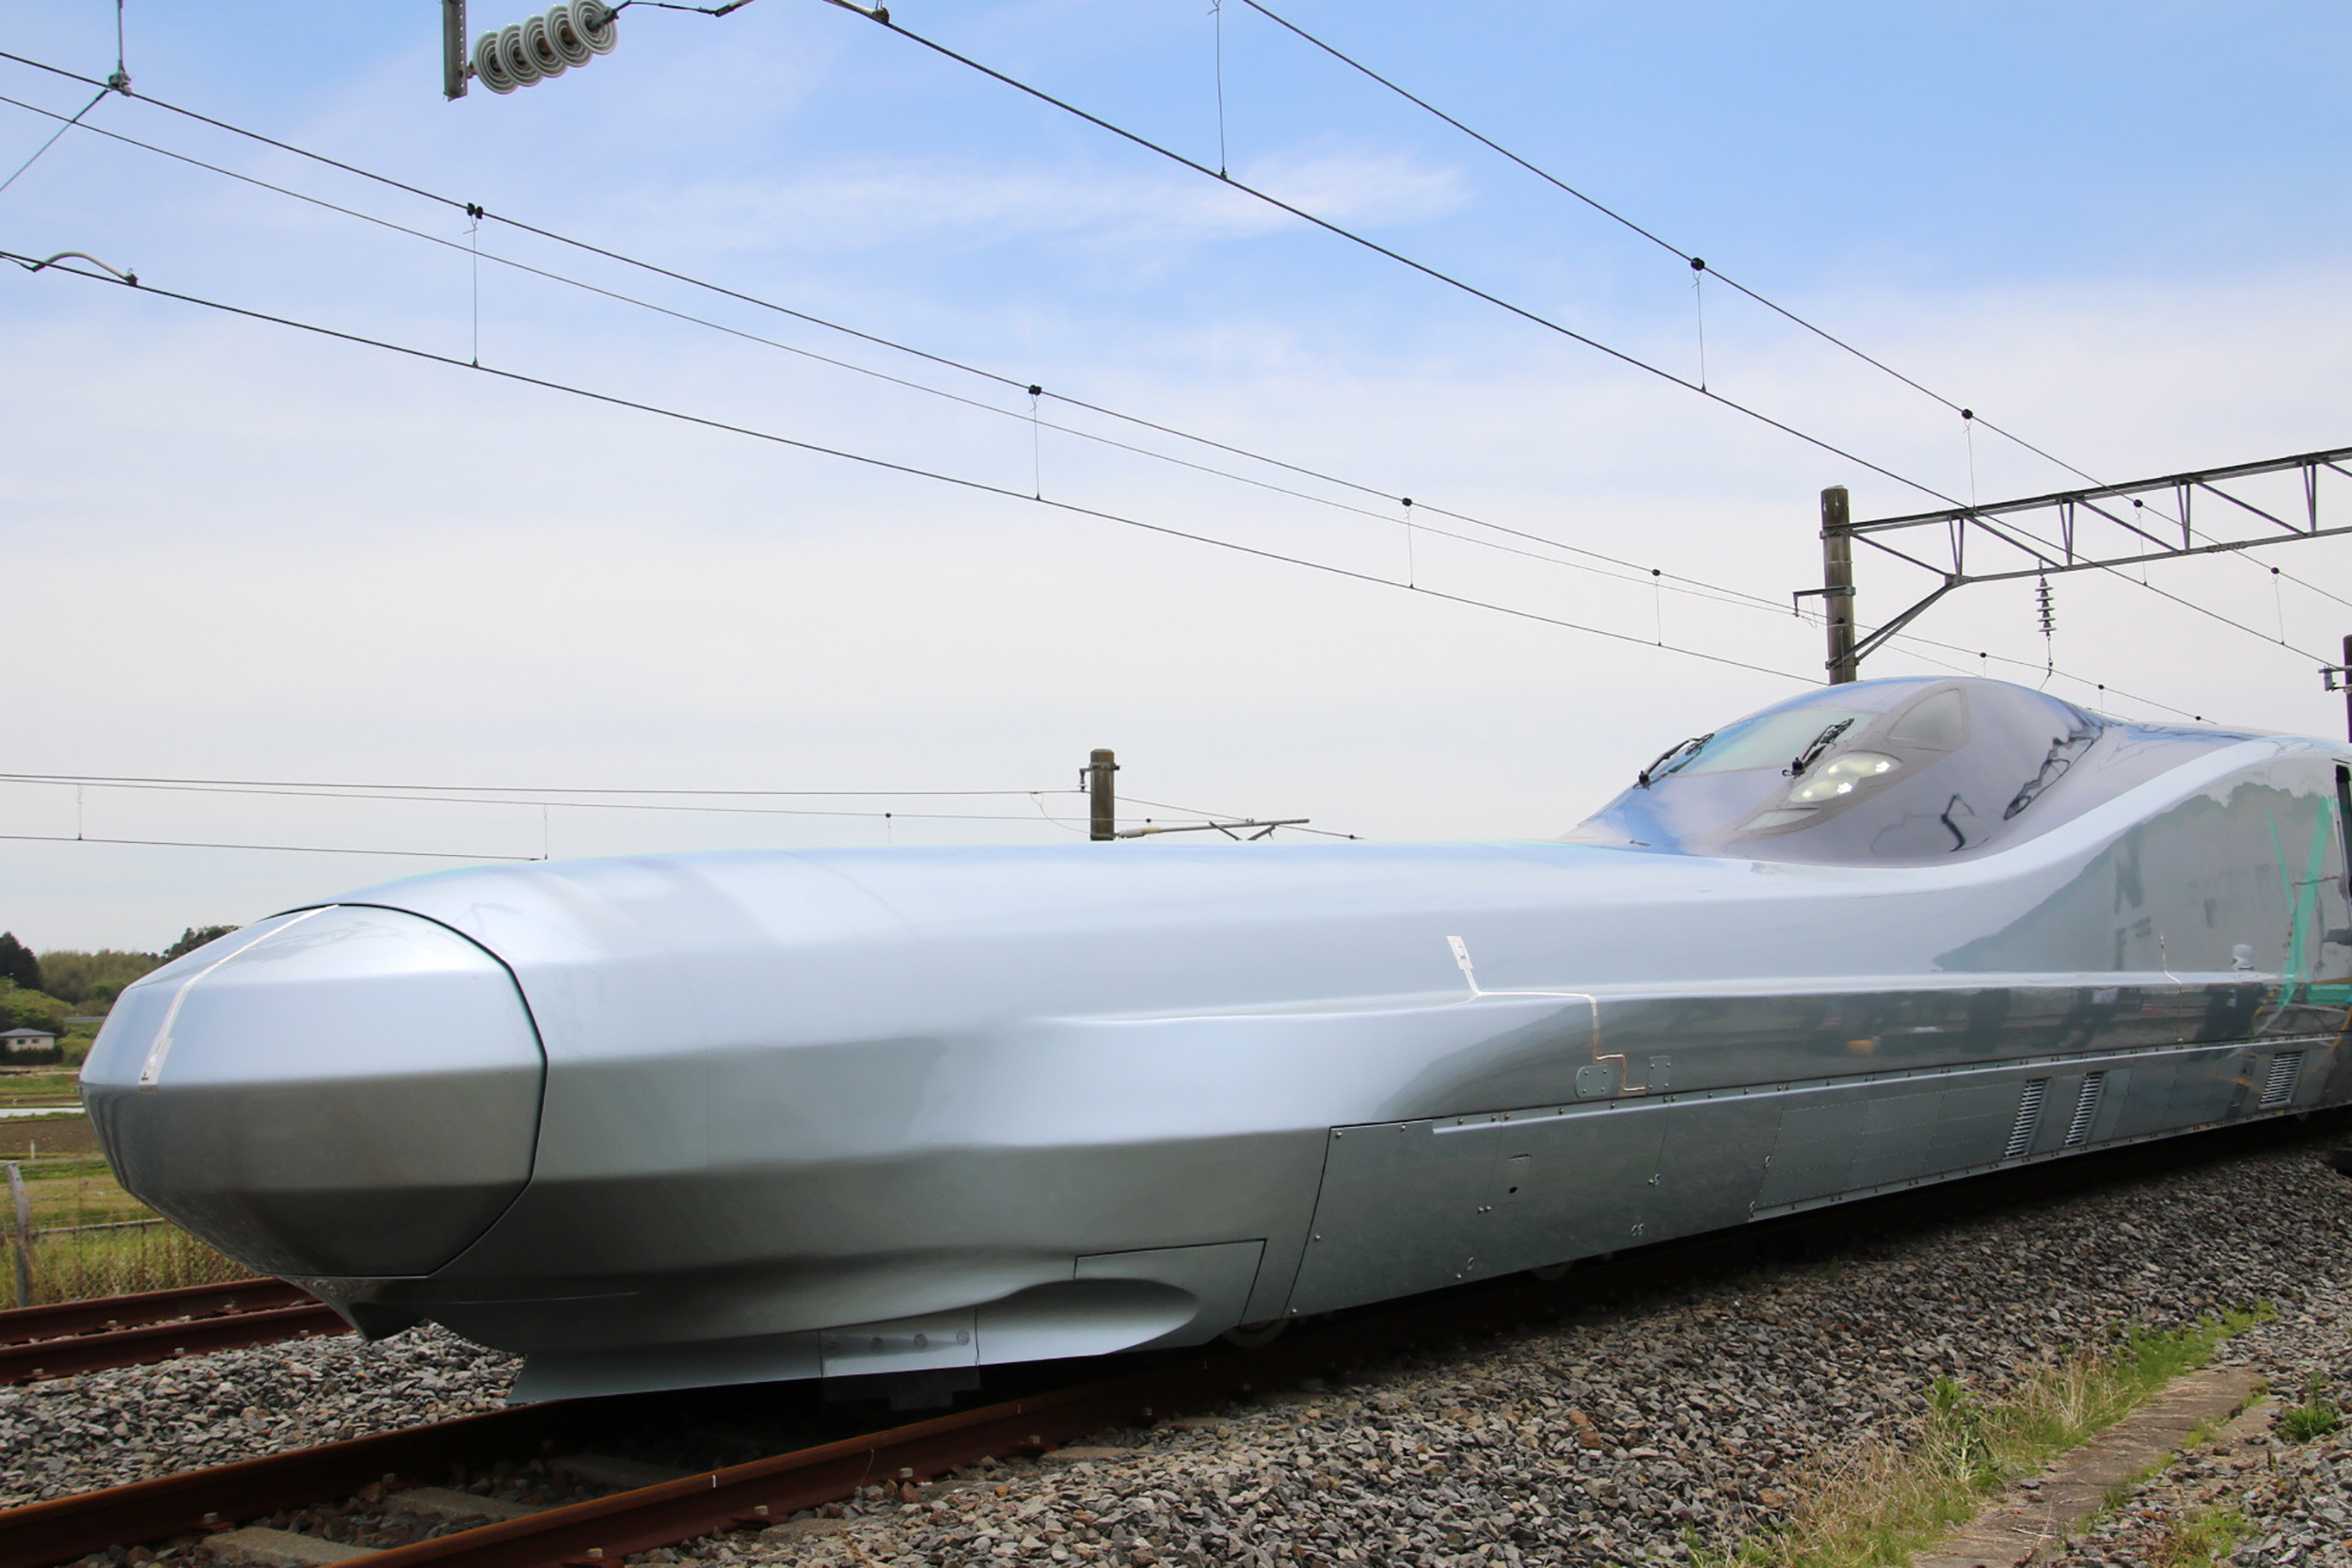 The World's Fastest Bullet Train Is Being Tested in Japan